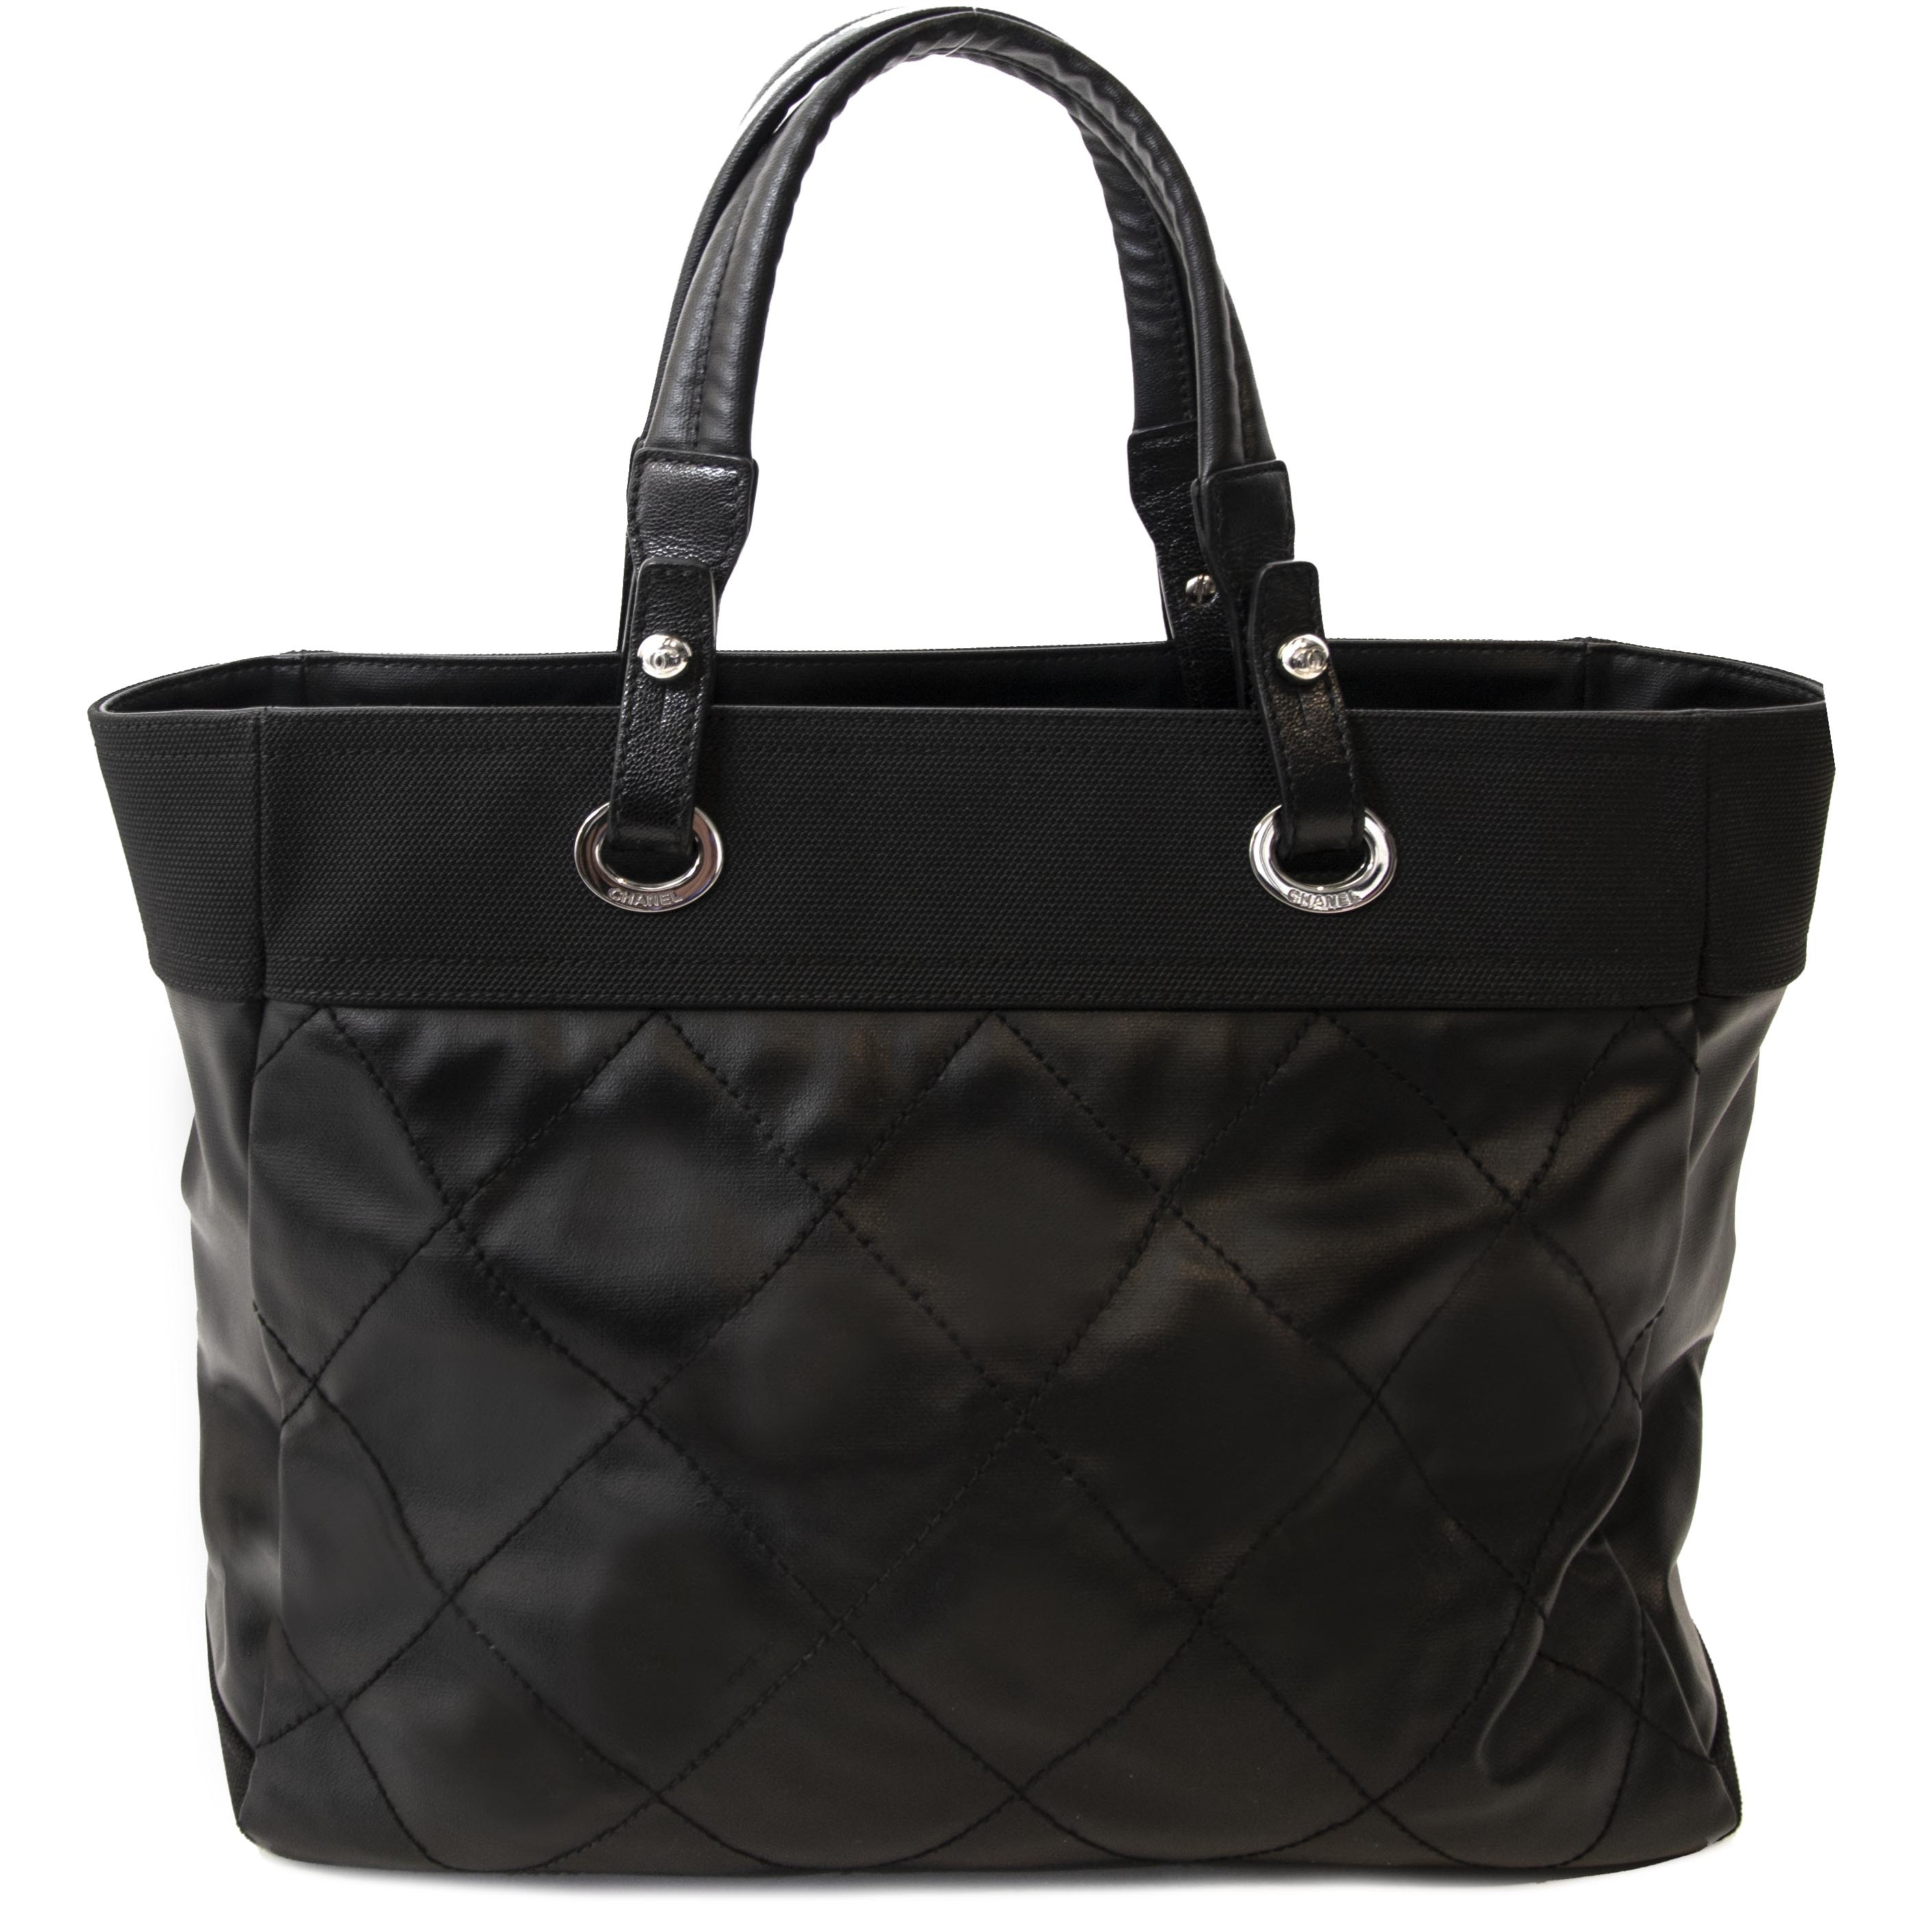 Chanel Black Quilted Coated Paris Biarritz GST Bag at the right price at Labellov Vintage Webshop.